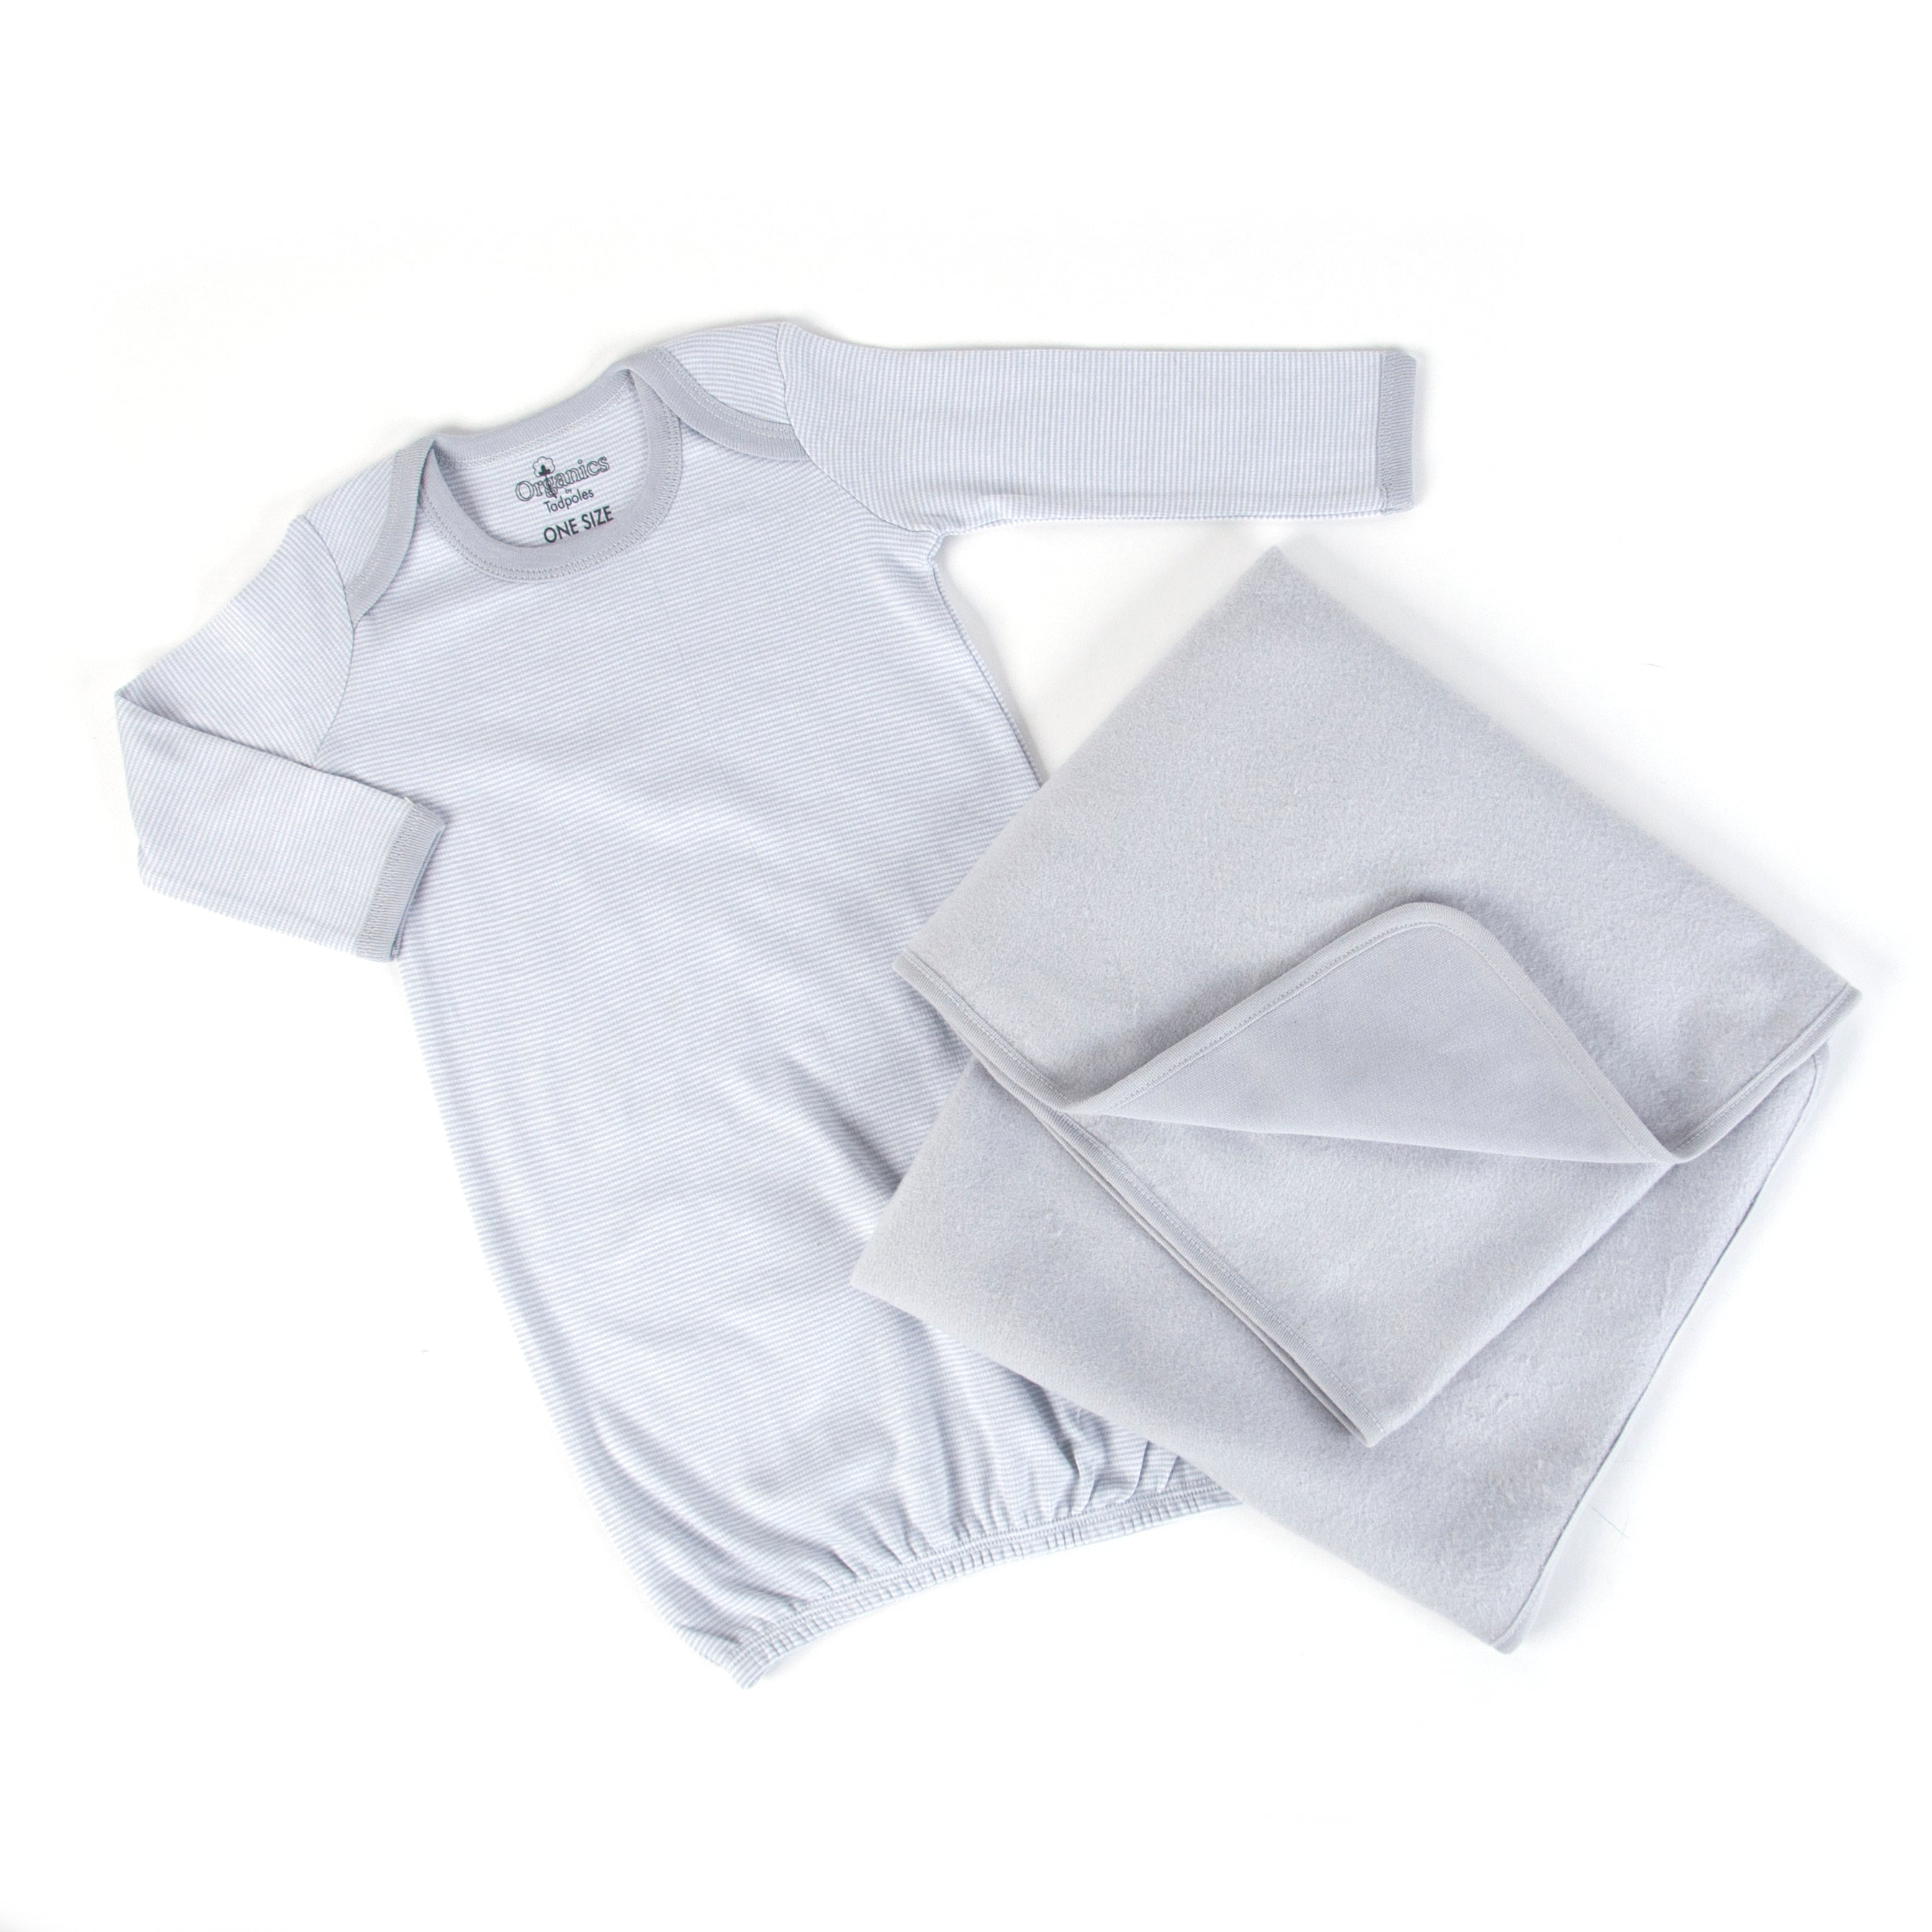 Tadpoles Organic Cotton Collection in Grey